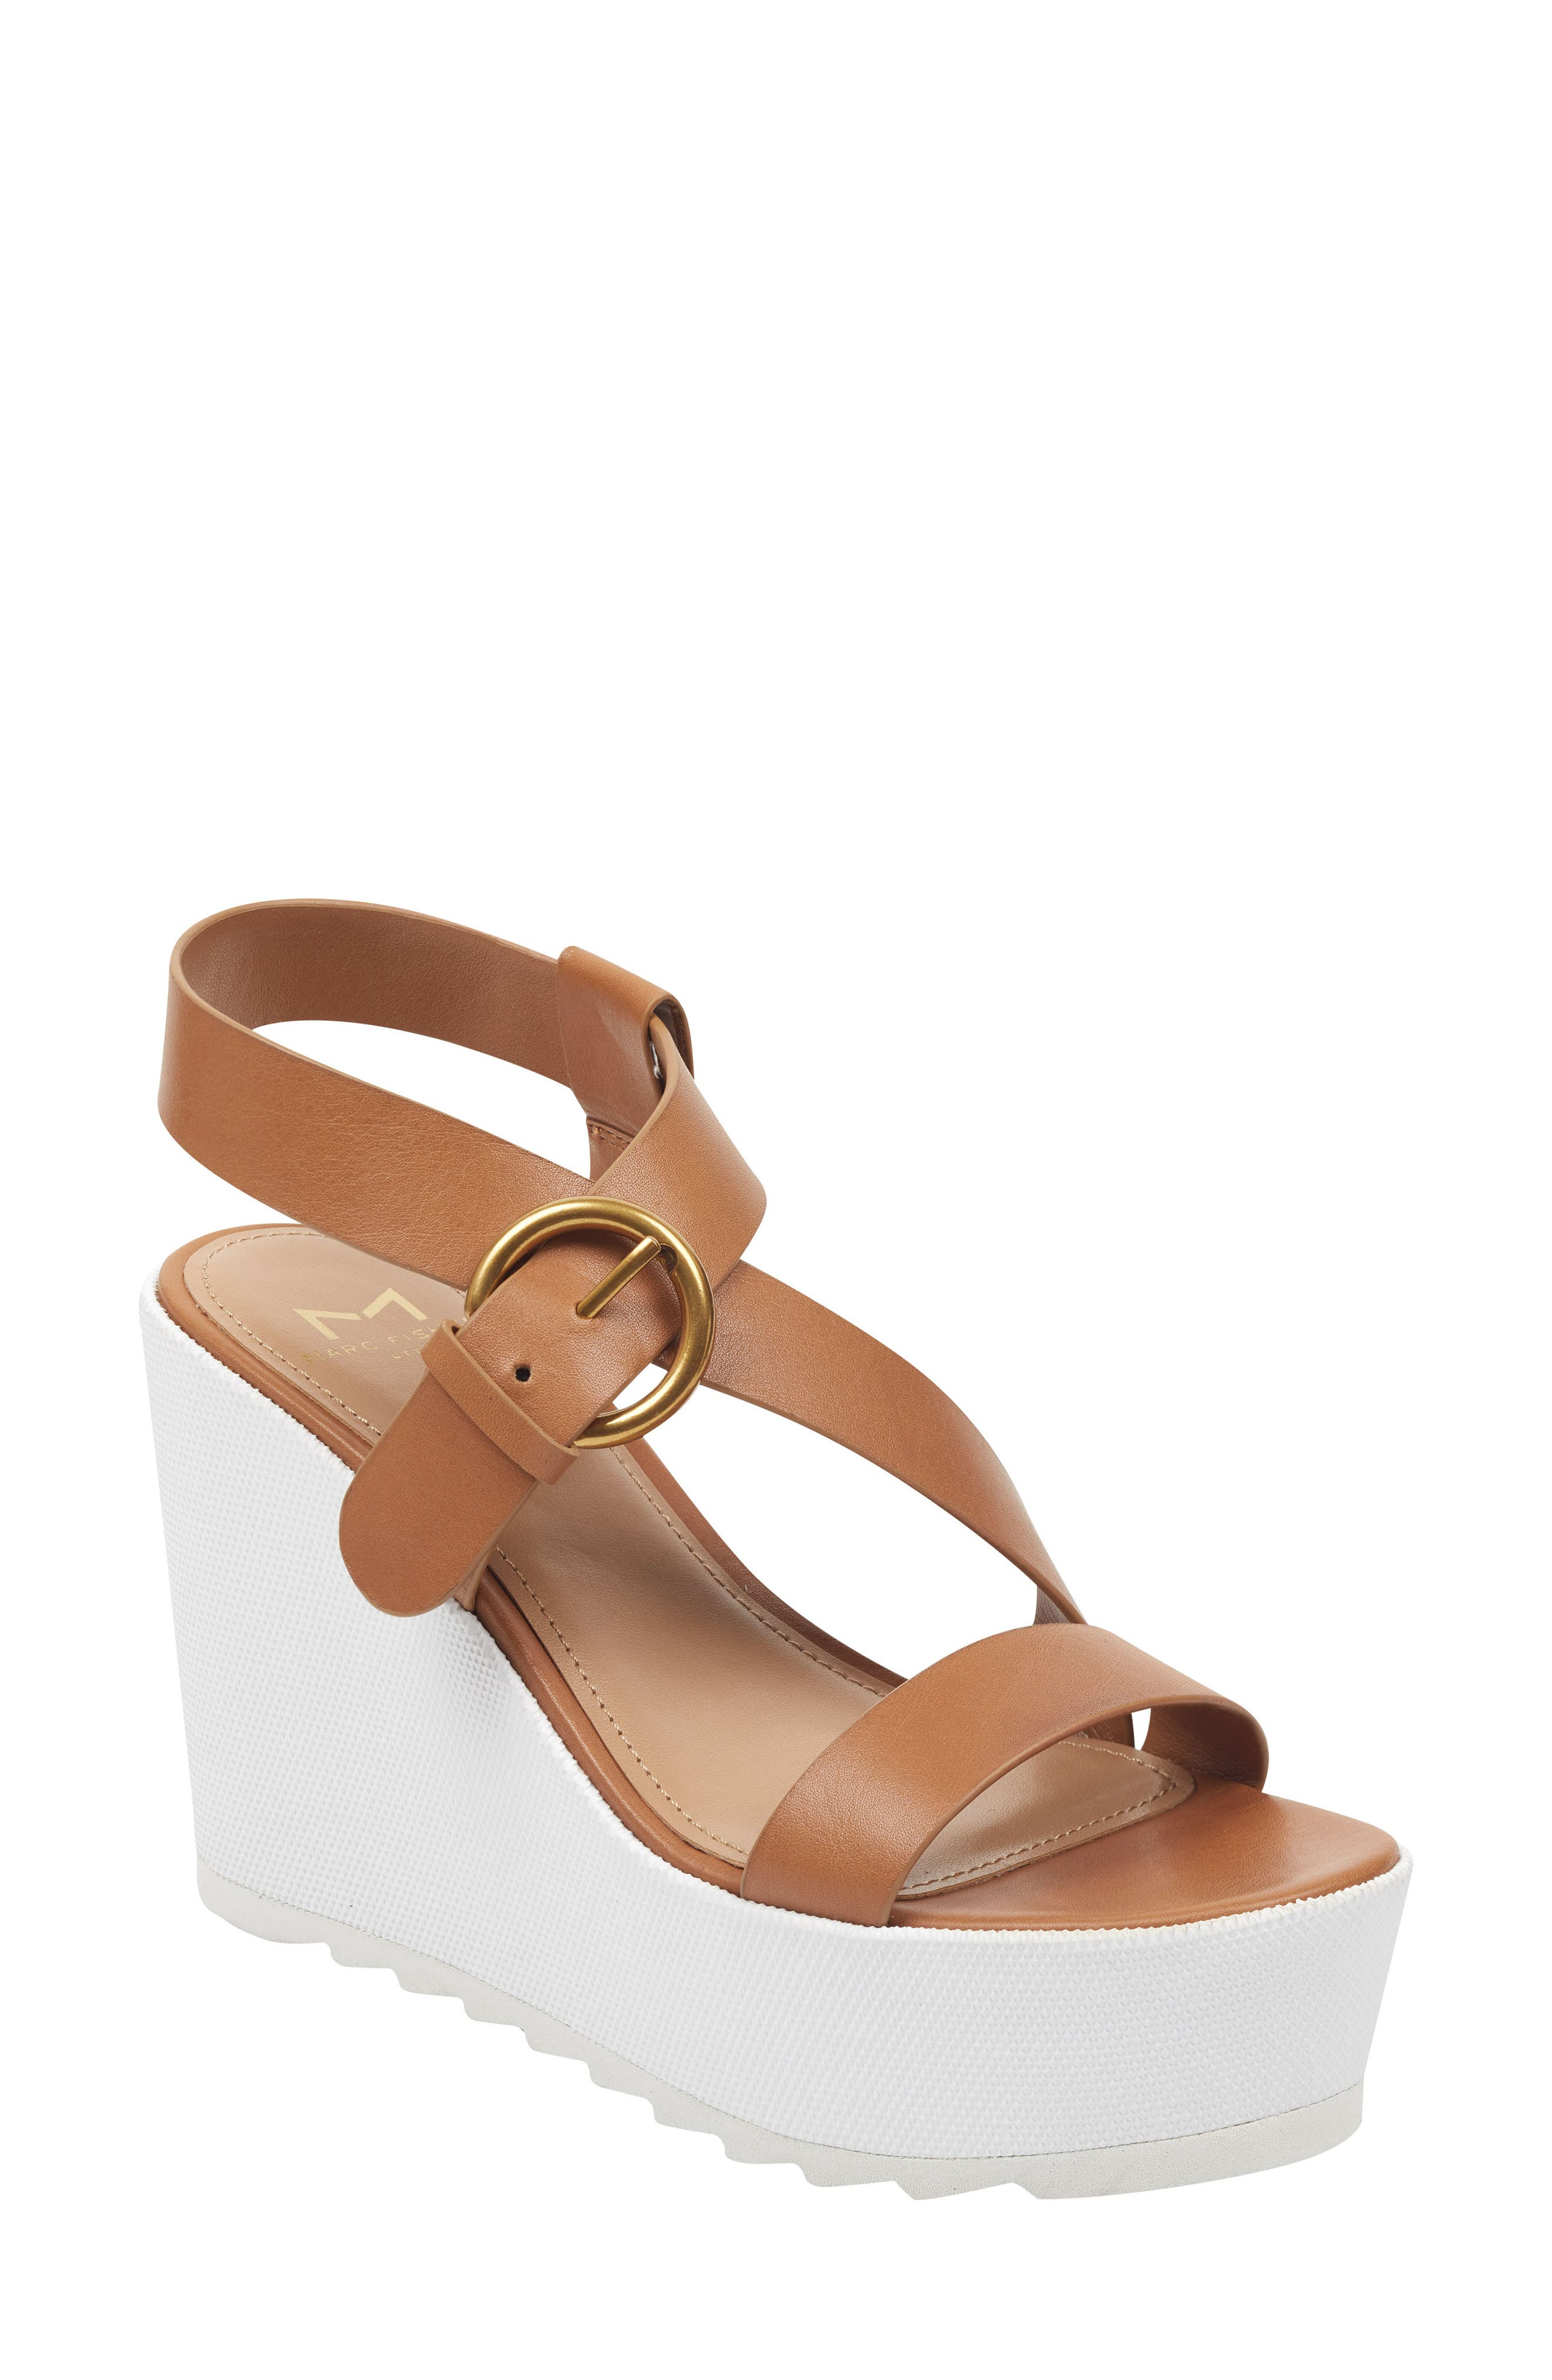 Marc Fisher Ltd Mahina Platform Wedge Sandal- Brown